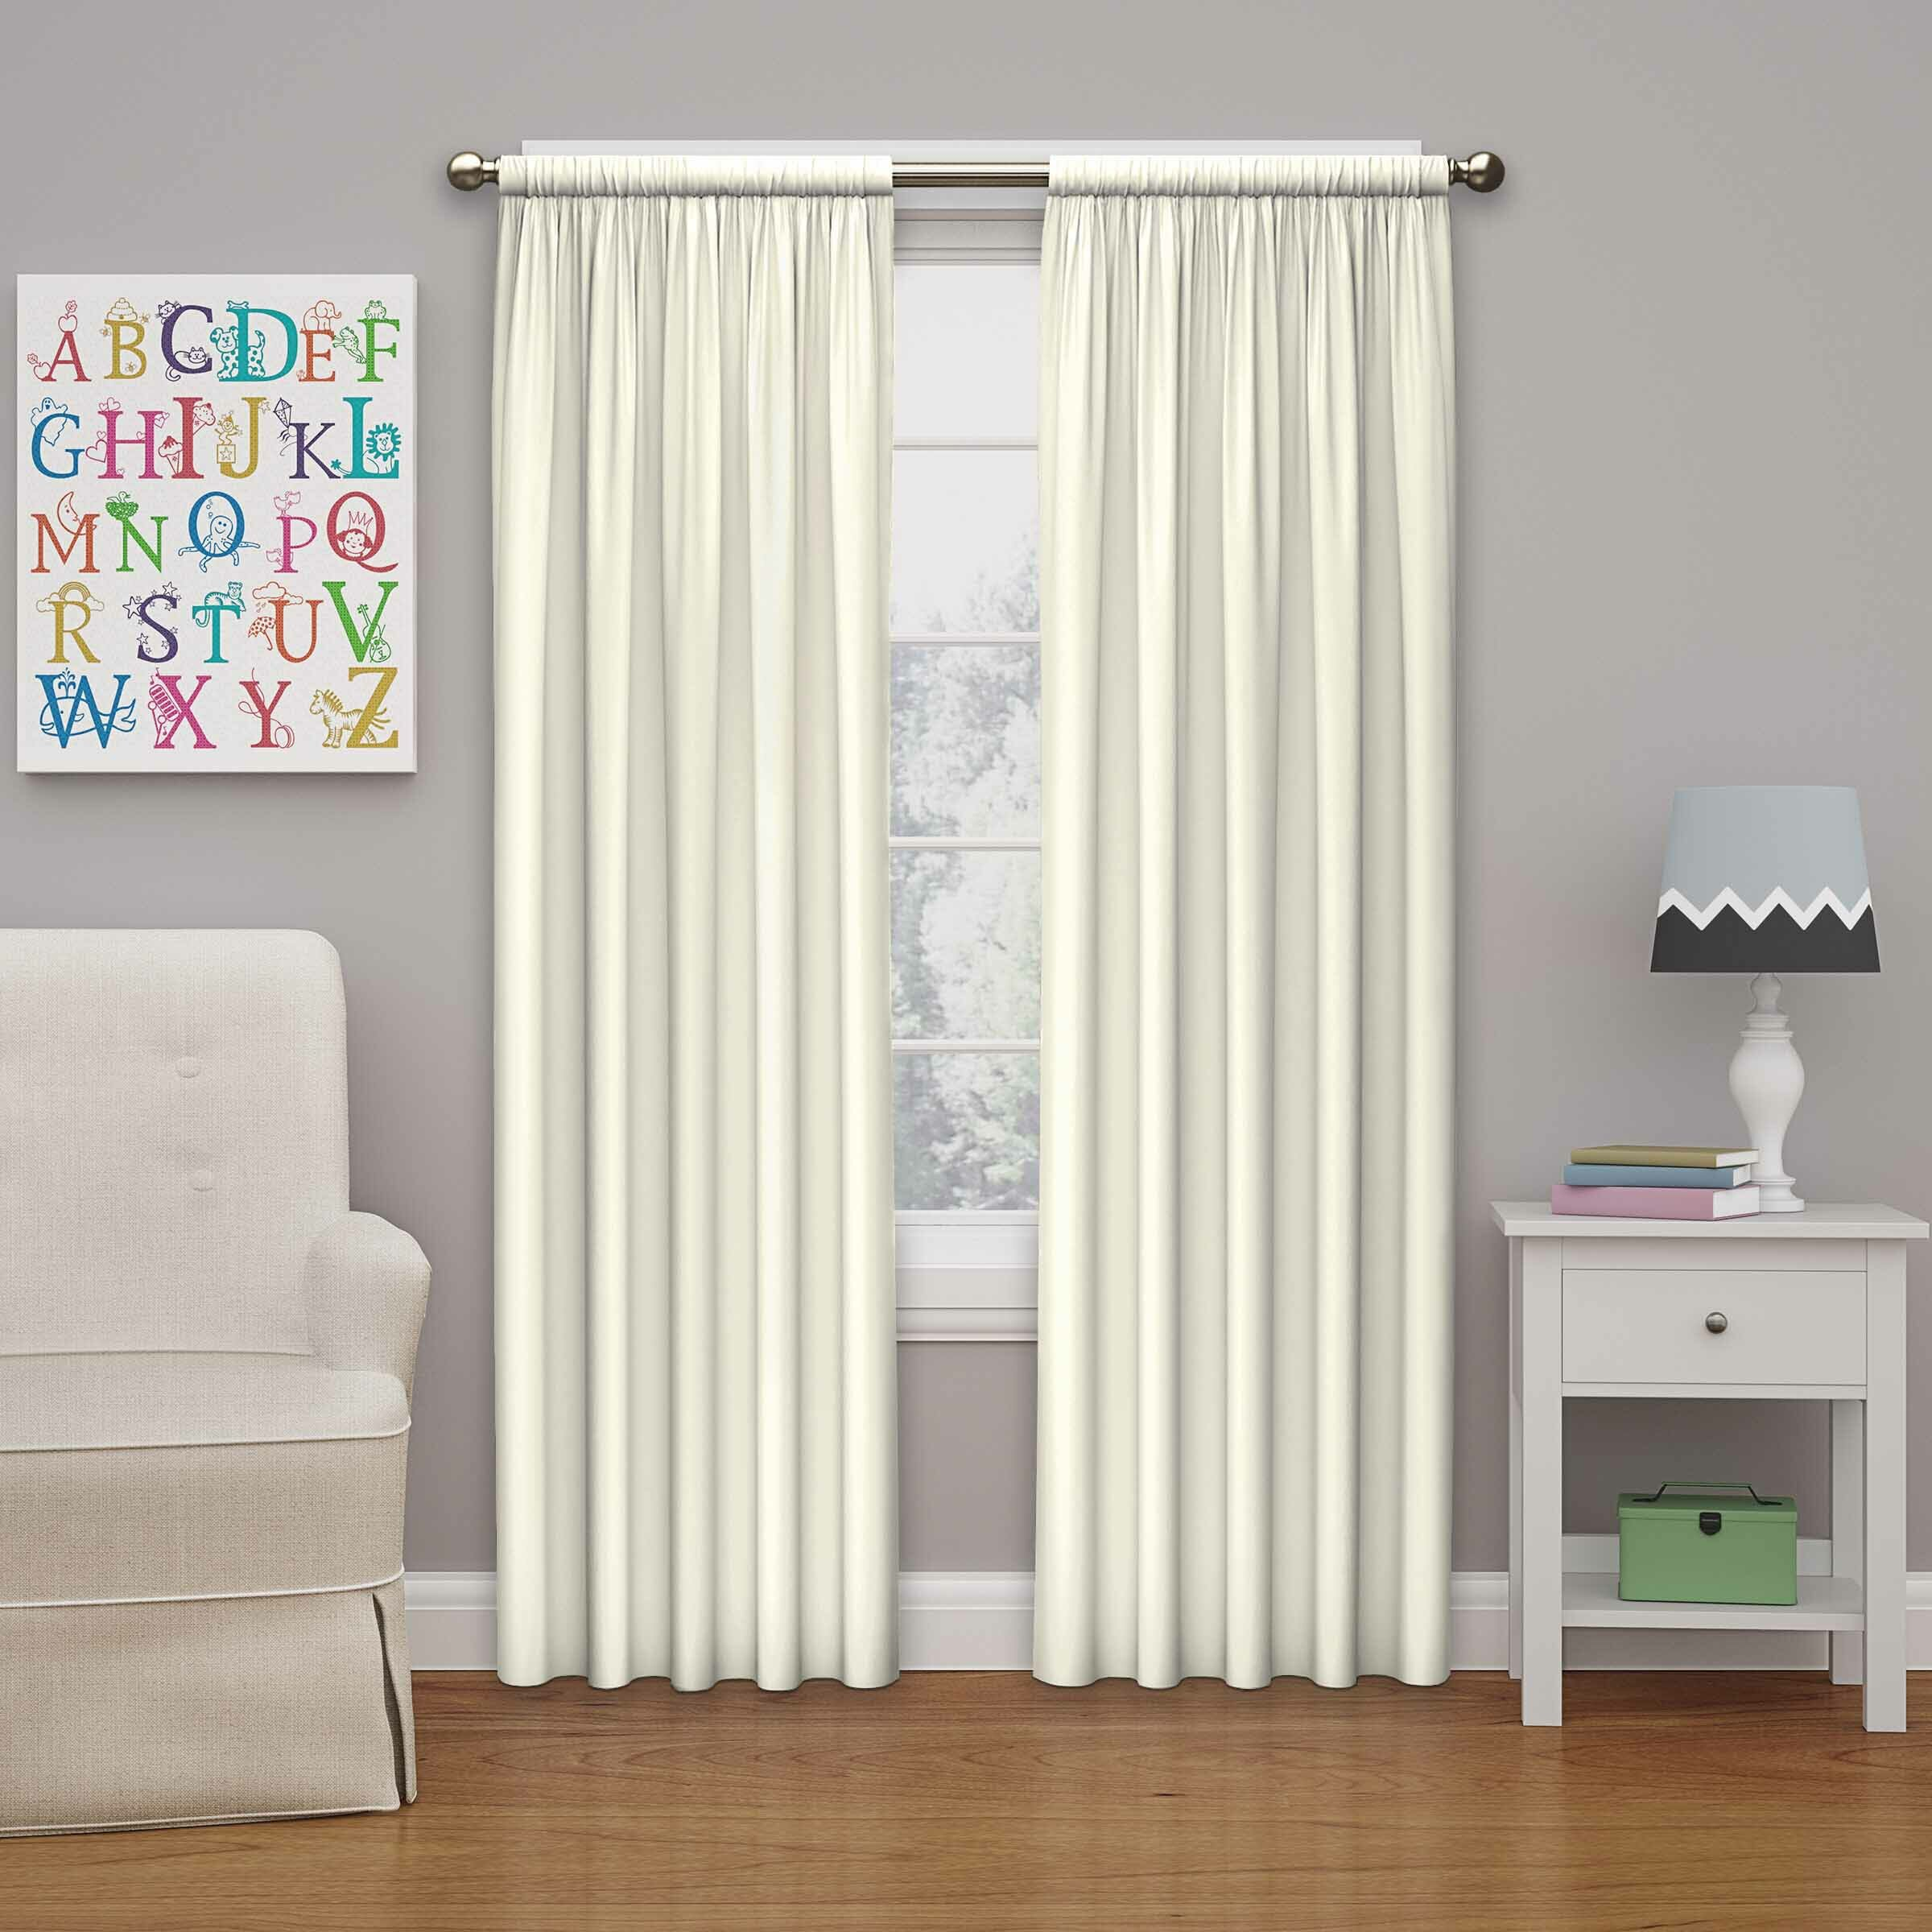 Jcpenney curtains for kids - Curtain Valances Jcpenney Eclipse Curtains Kids Microfiber Room Darkening Single Curtain Panel